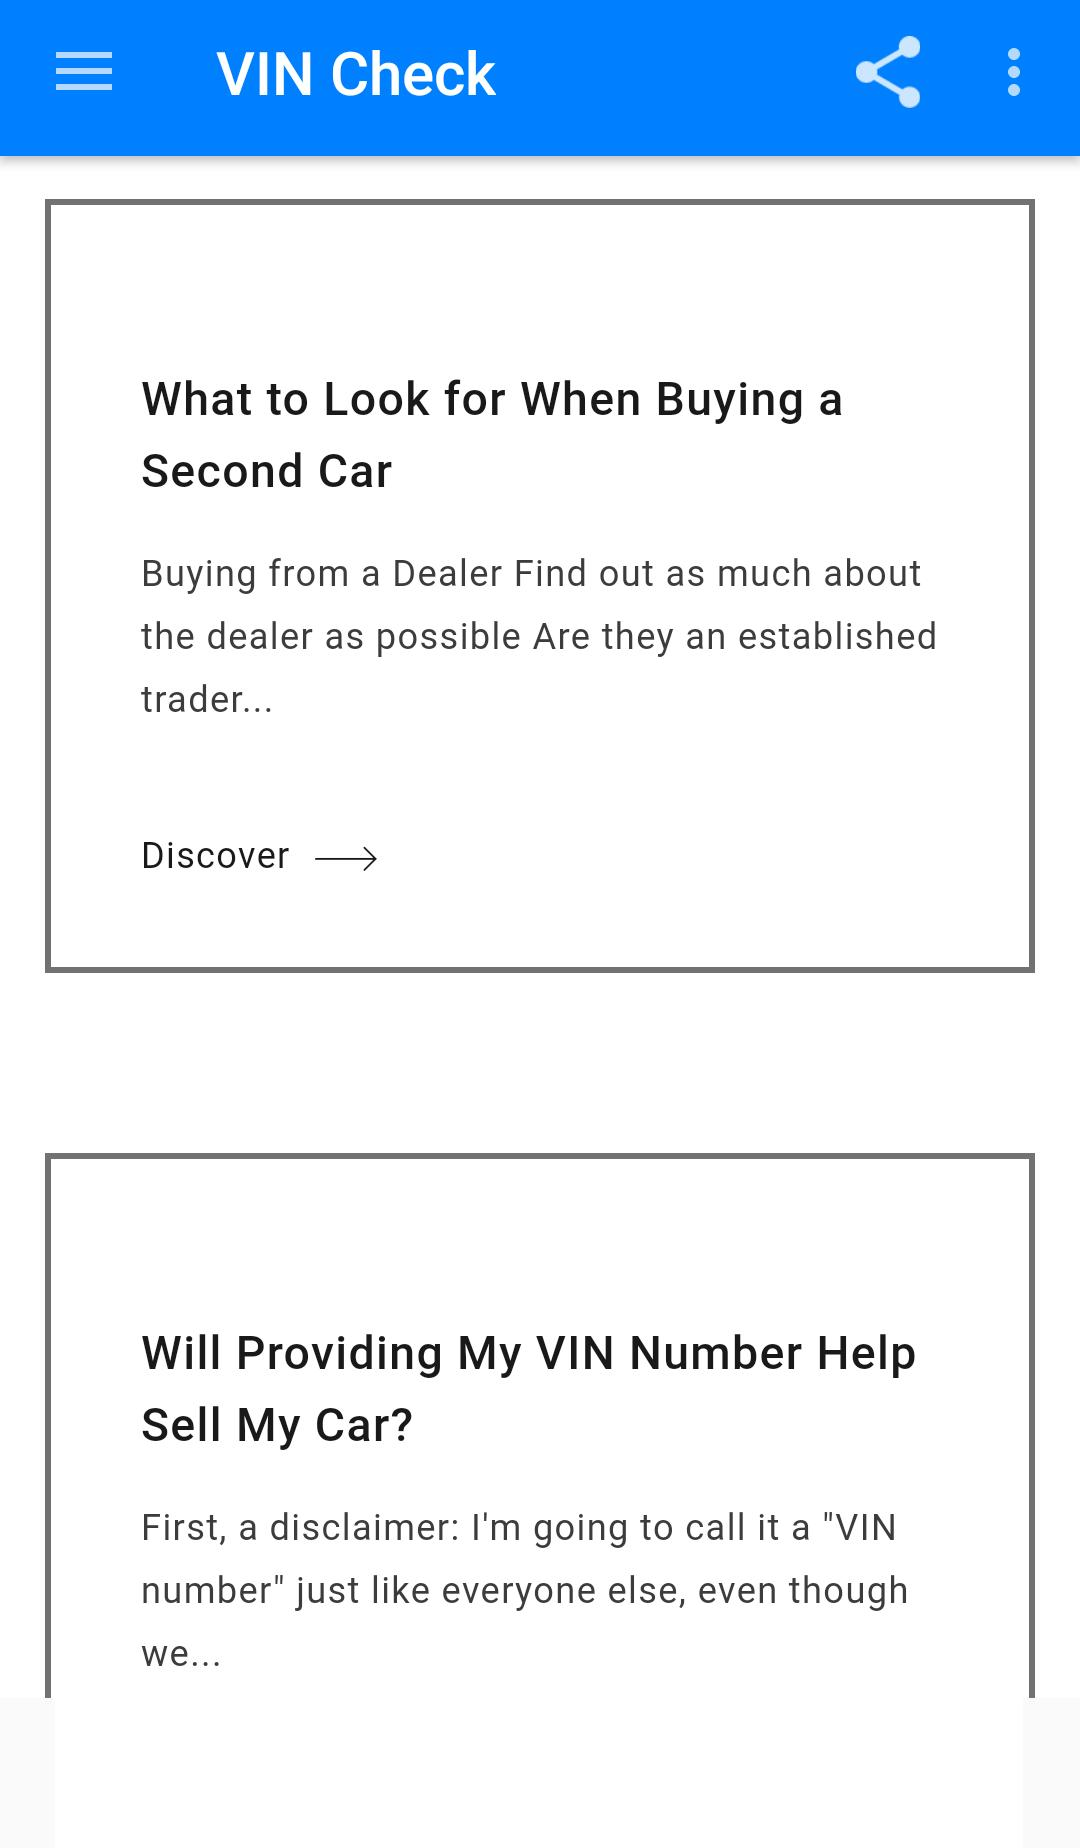 How To Check A Vin Number Free | Top New Car Release Date